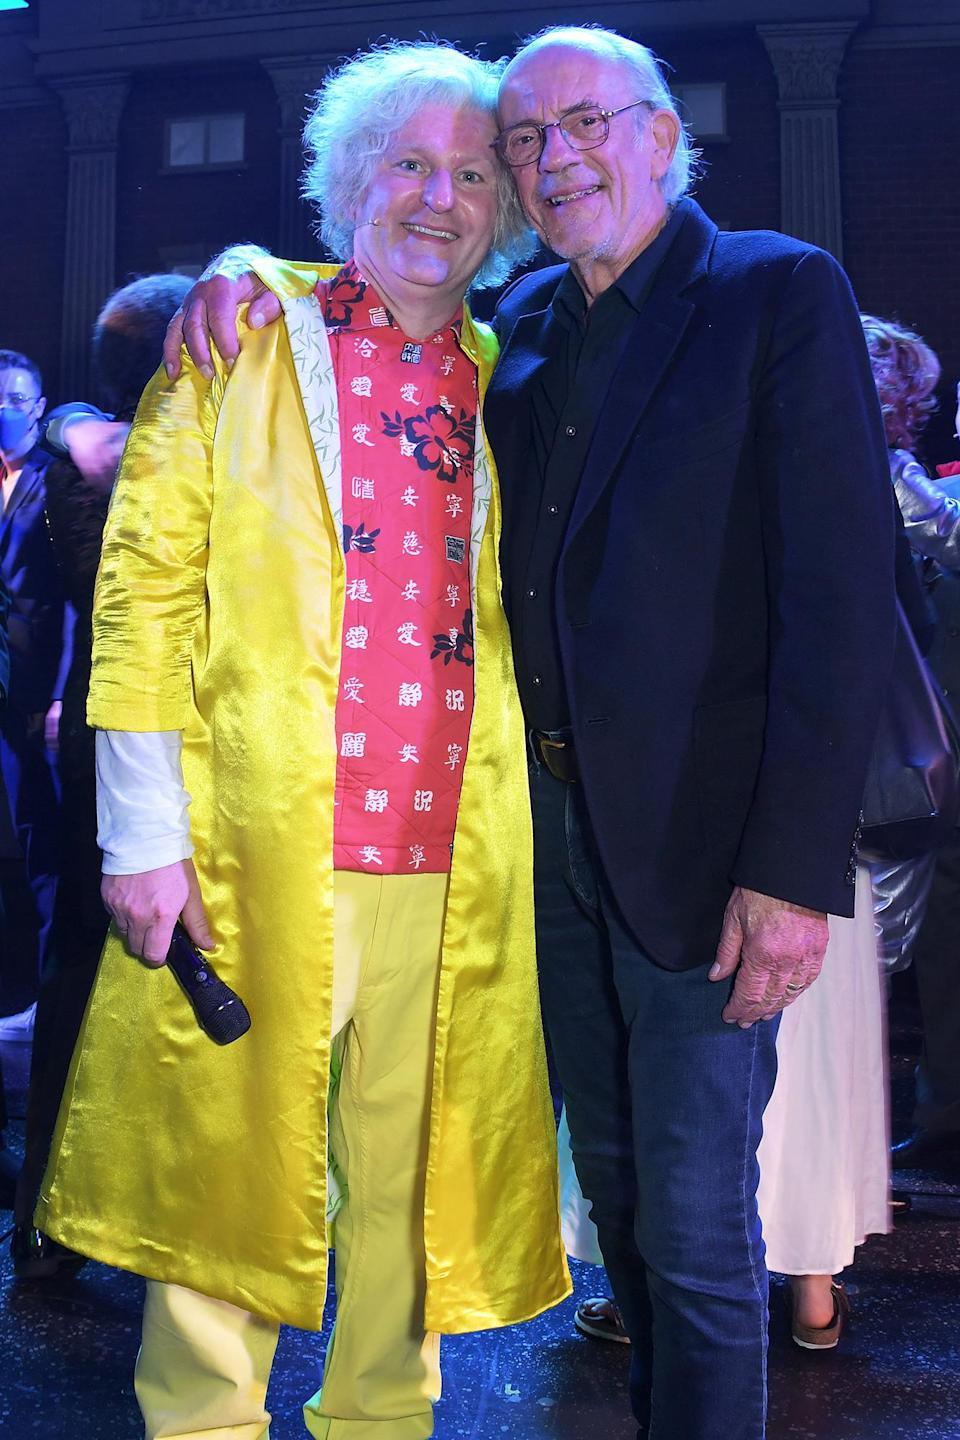 <p>Mark Oxtoby and Christopher Lloyd embrace after the curtain call during opening night of <em>Back to the Future: The Musical</em> at The Adelphi Theatre on Sept. 13 in London.</p>